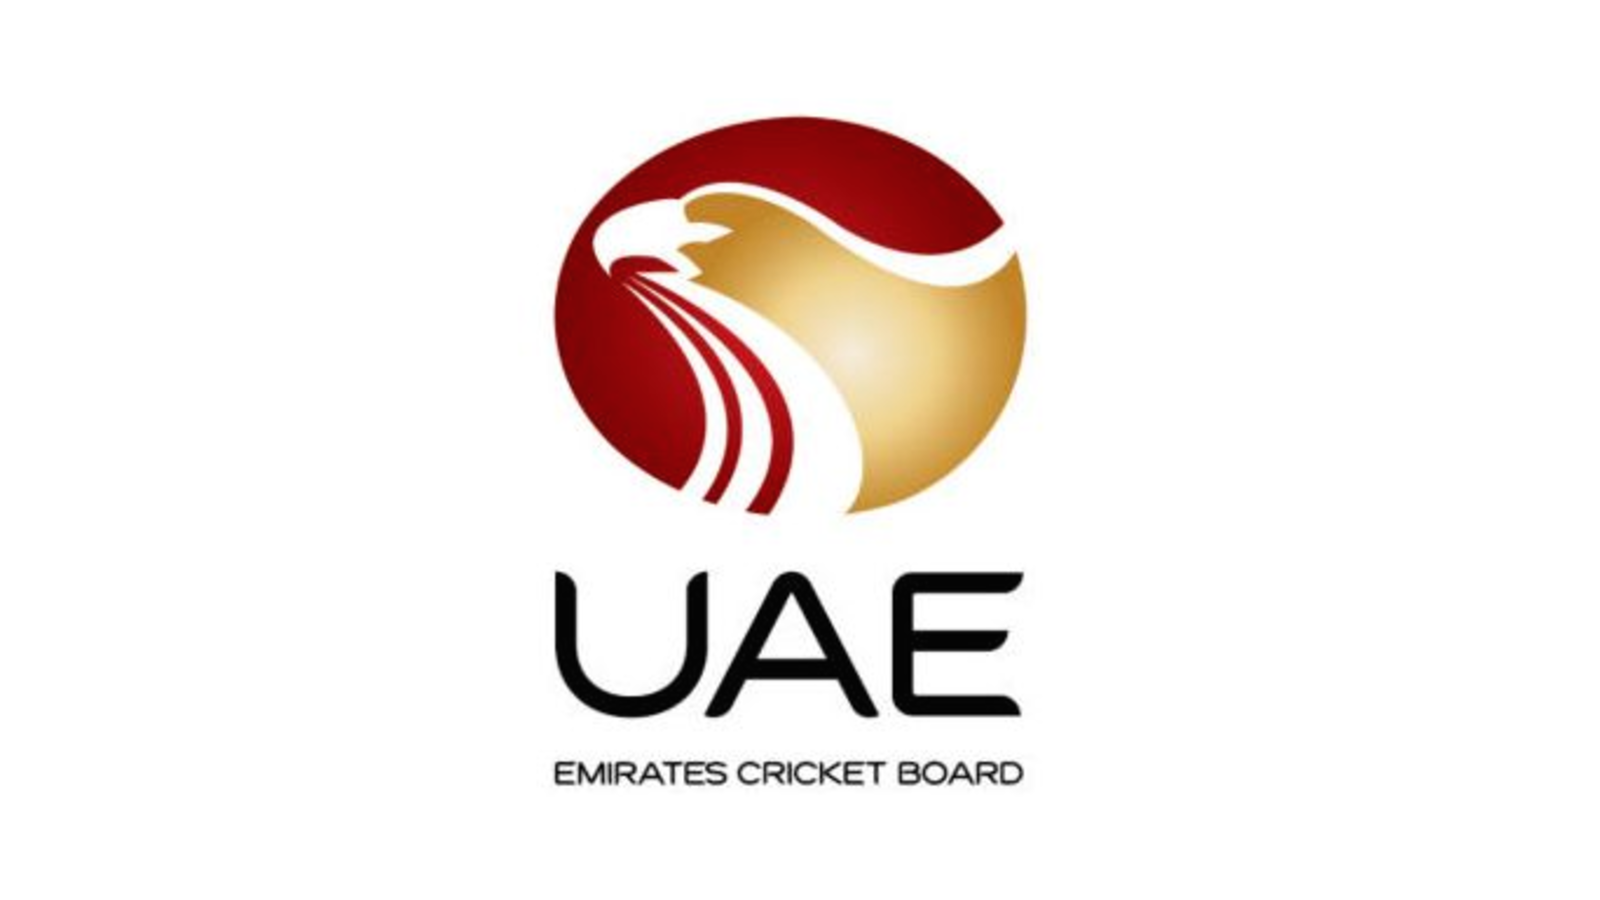 Emirates Cricket Board logo